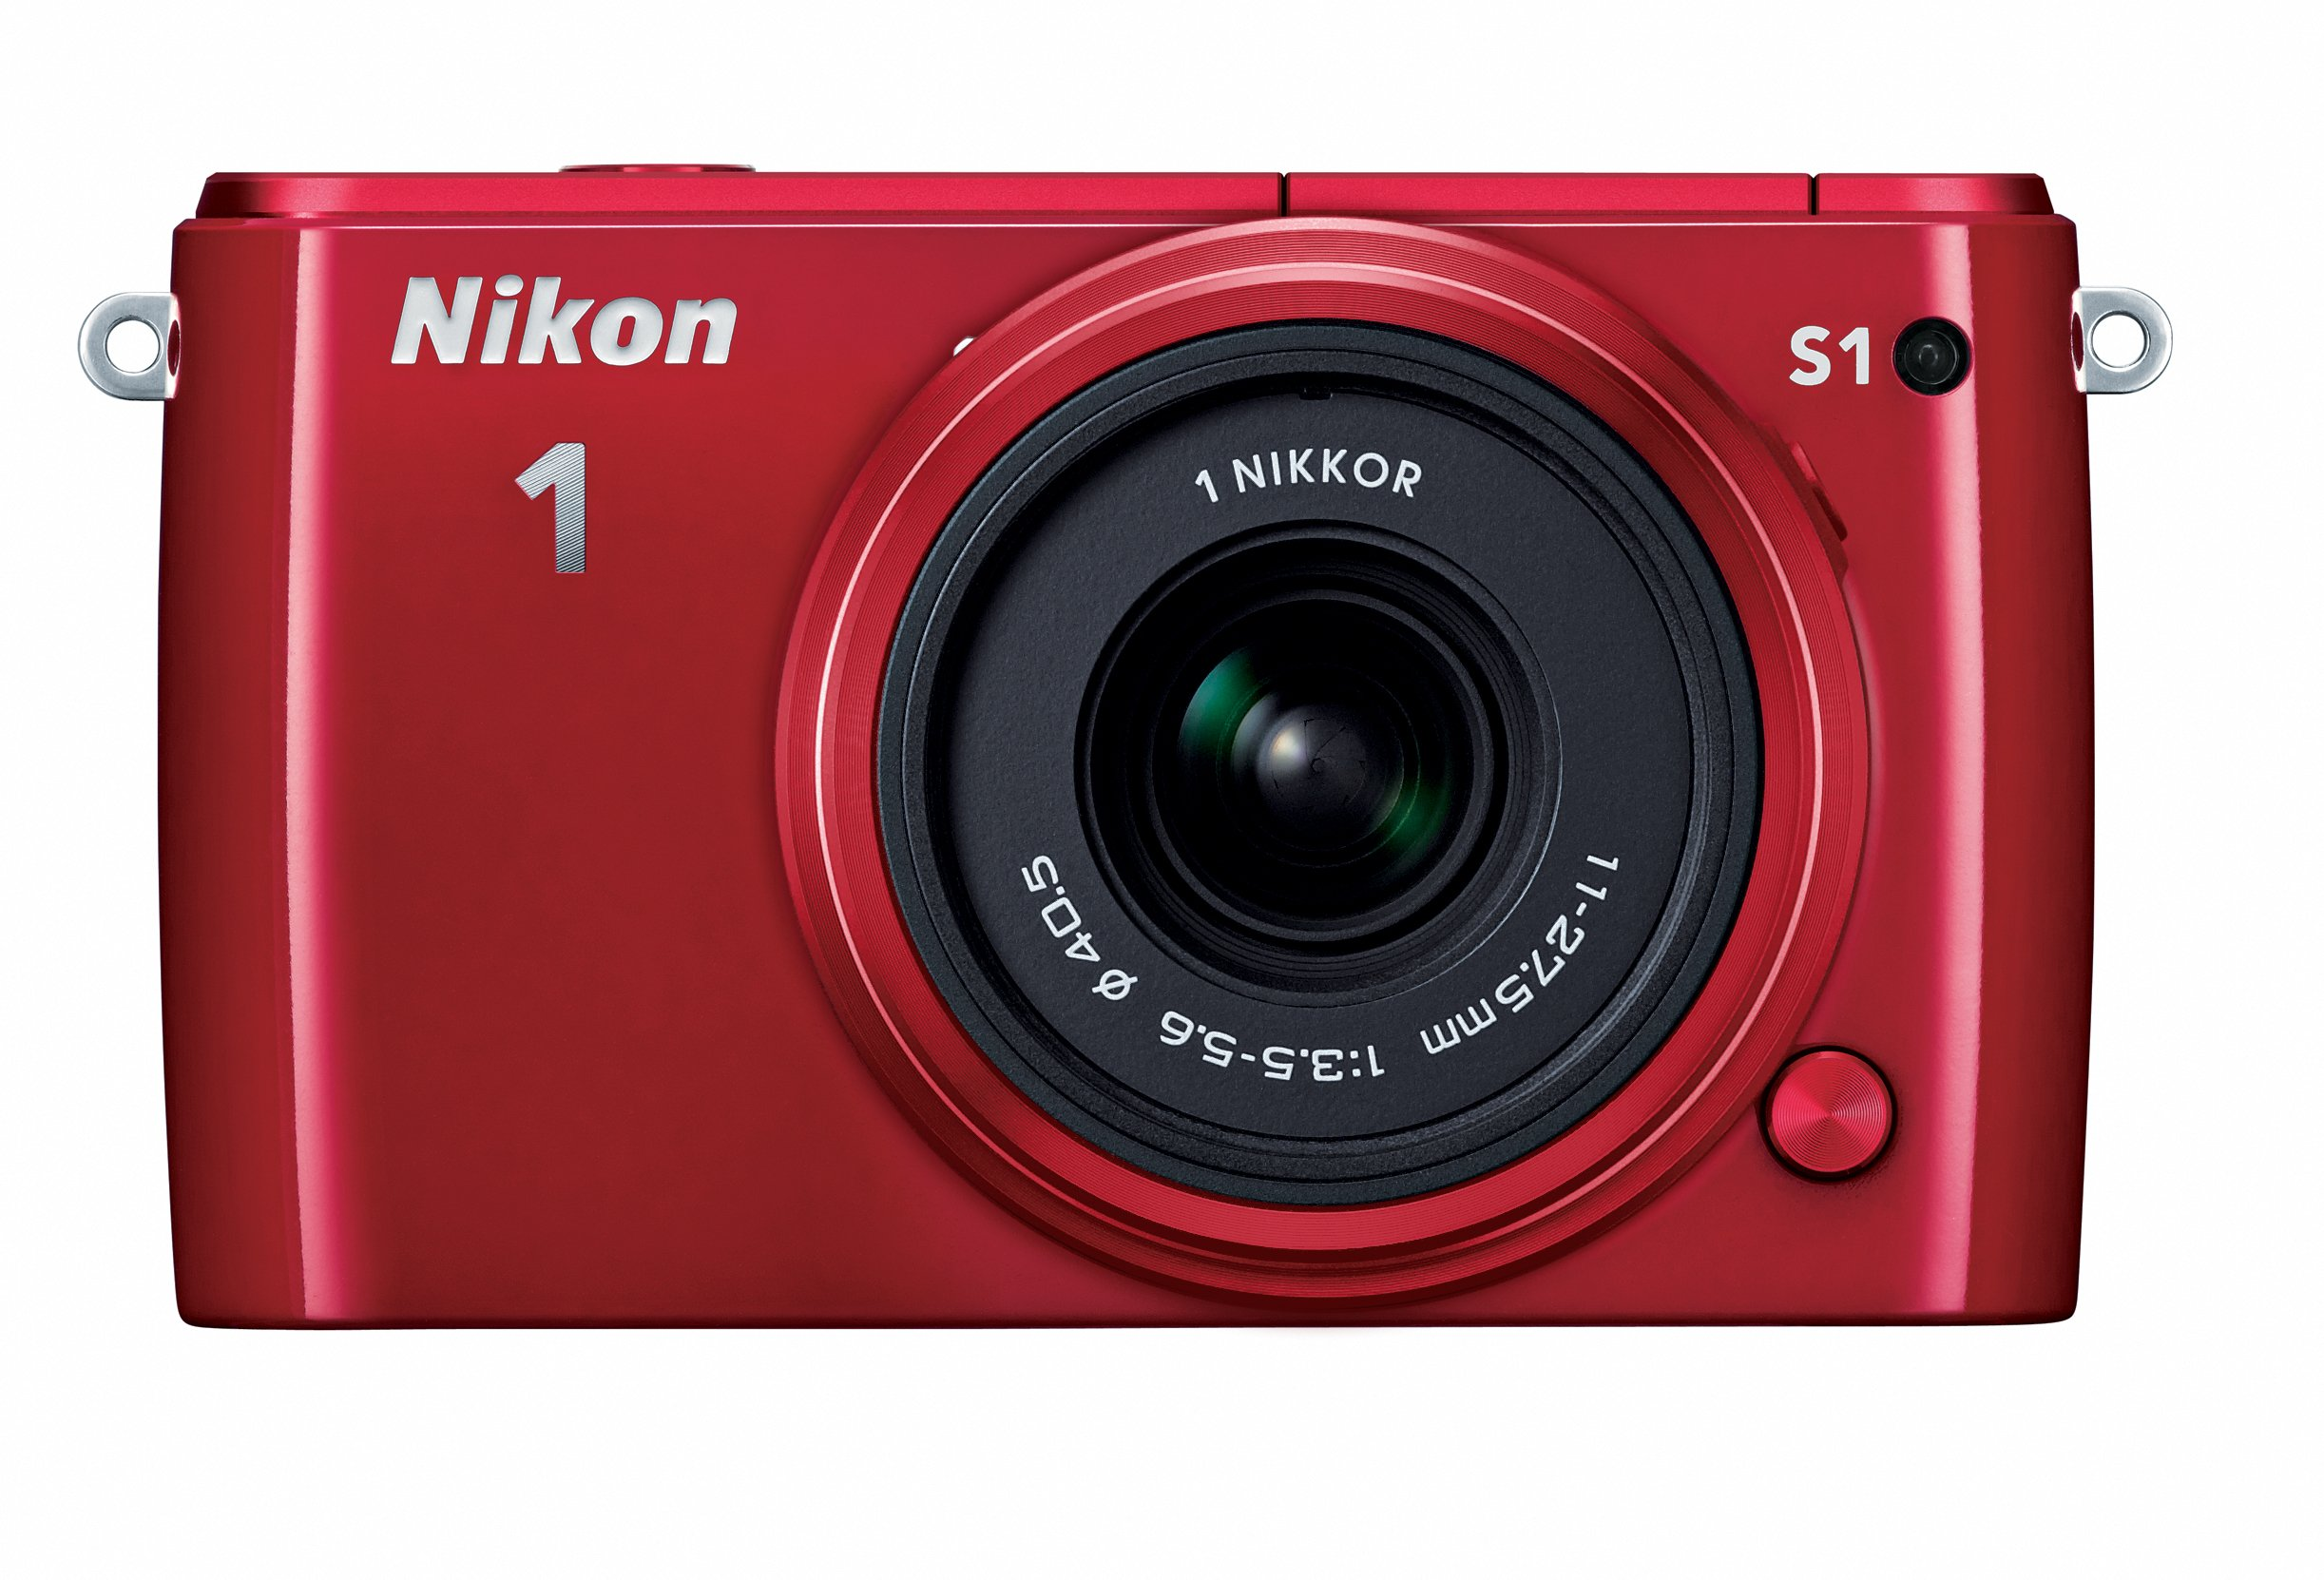 Nikon 1 S1 10.1 MP HD Digital Camera with 11-27.5mm 1 NIKKOR Lens (Red)